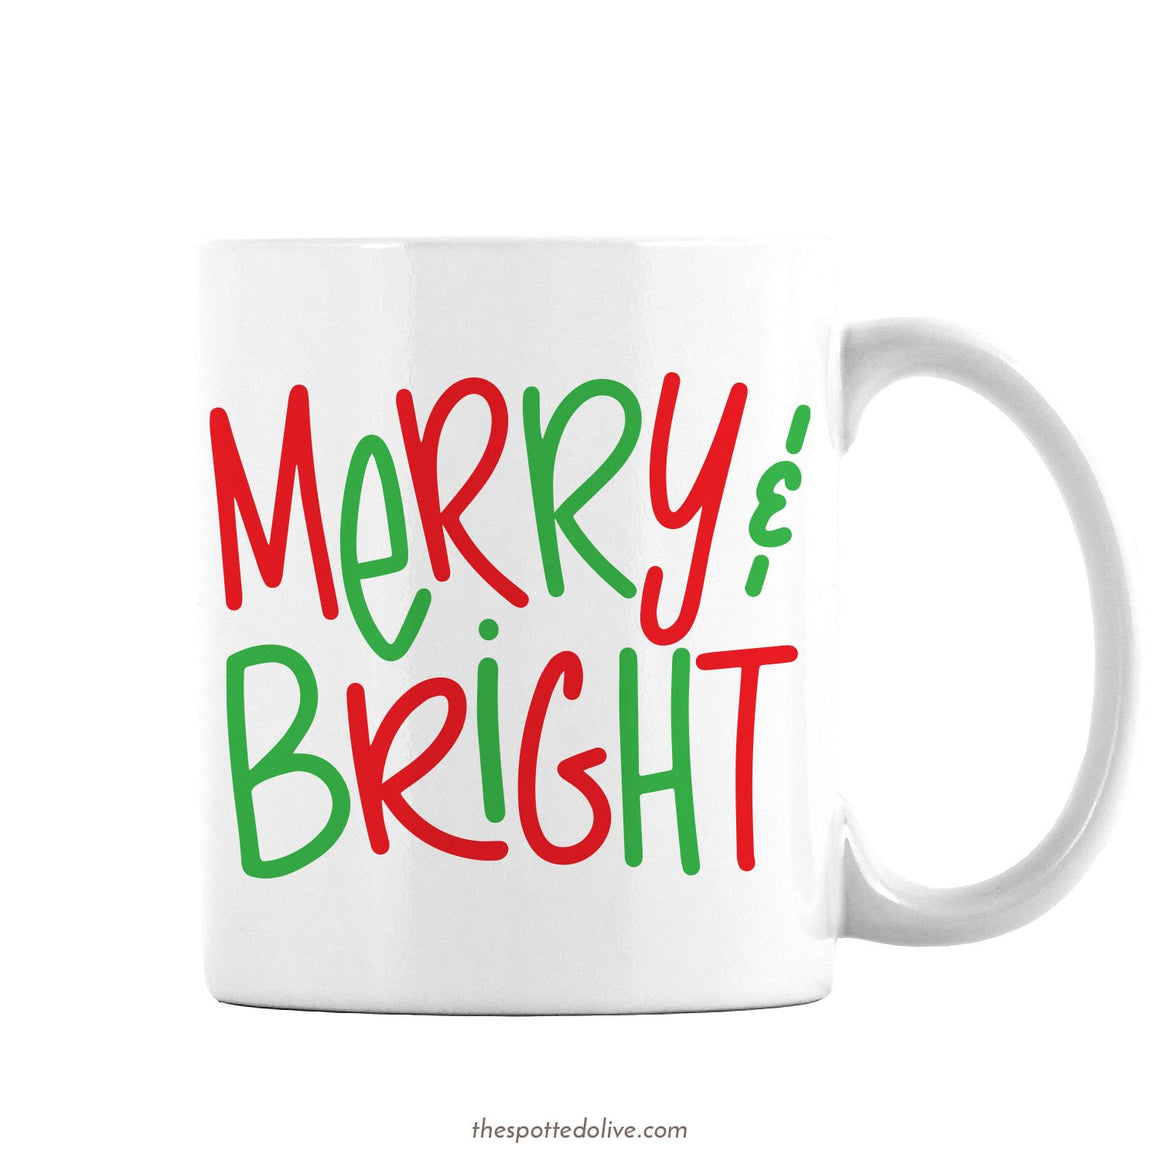 Hand Lettered Merry & Bright Mug By The Spotted Olive - Right